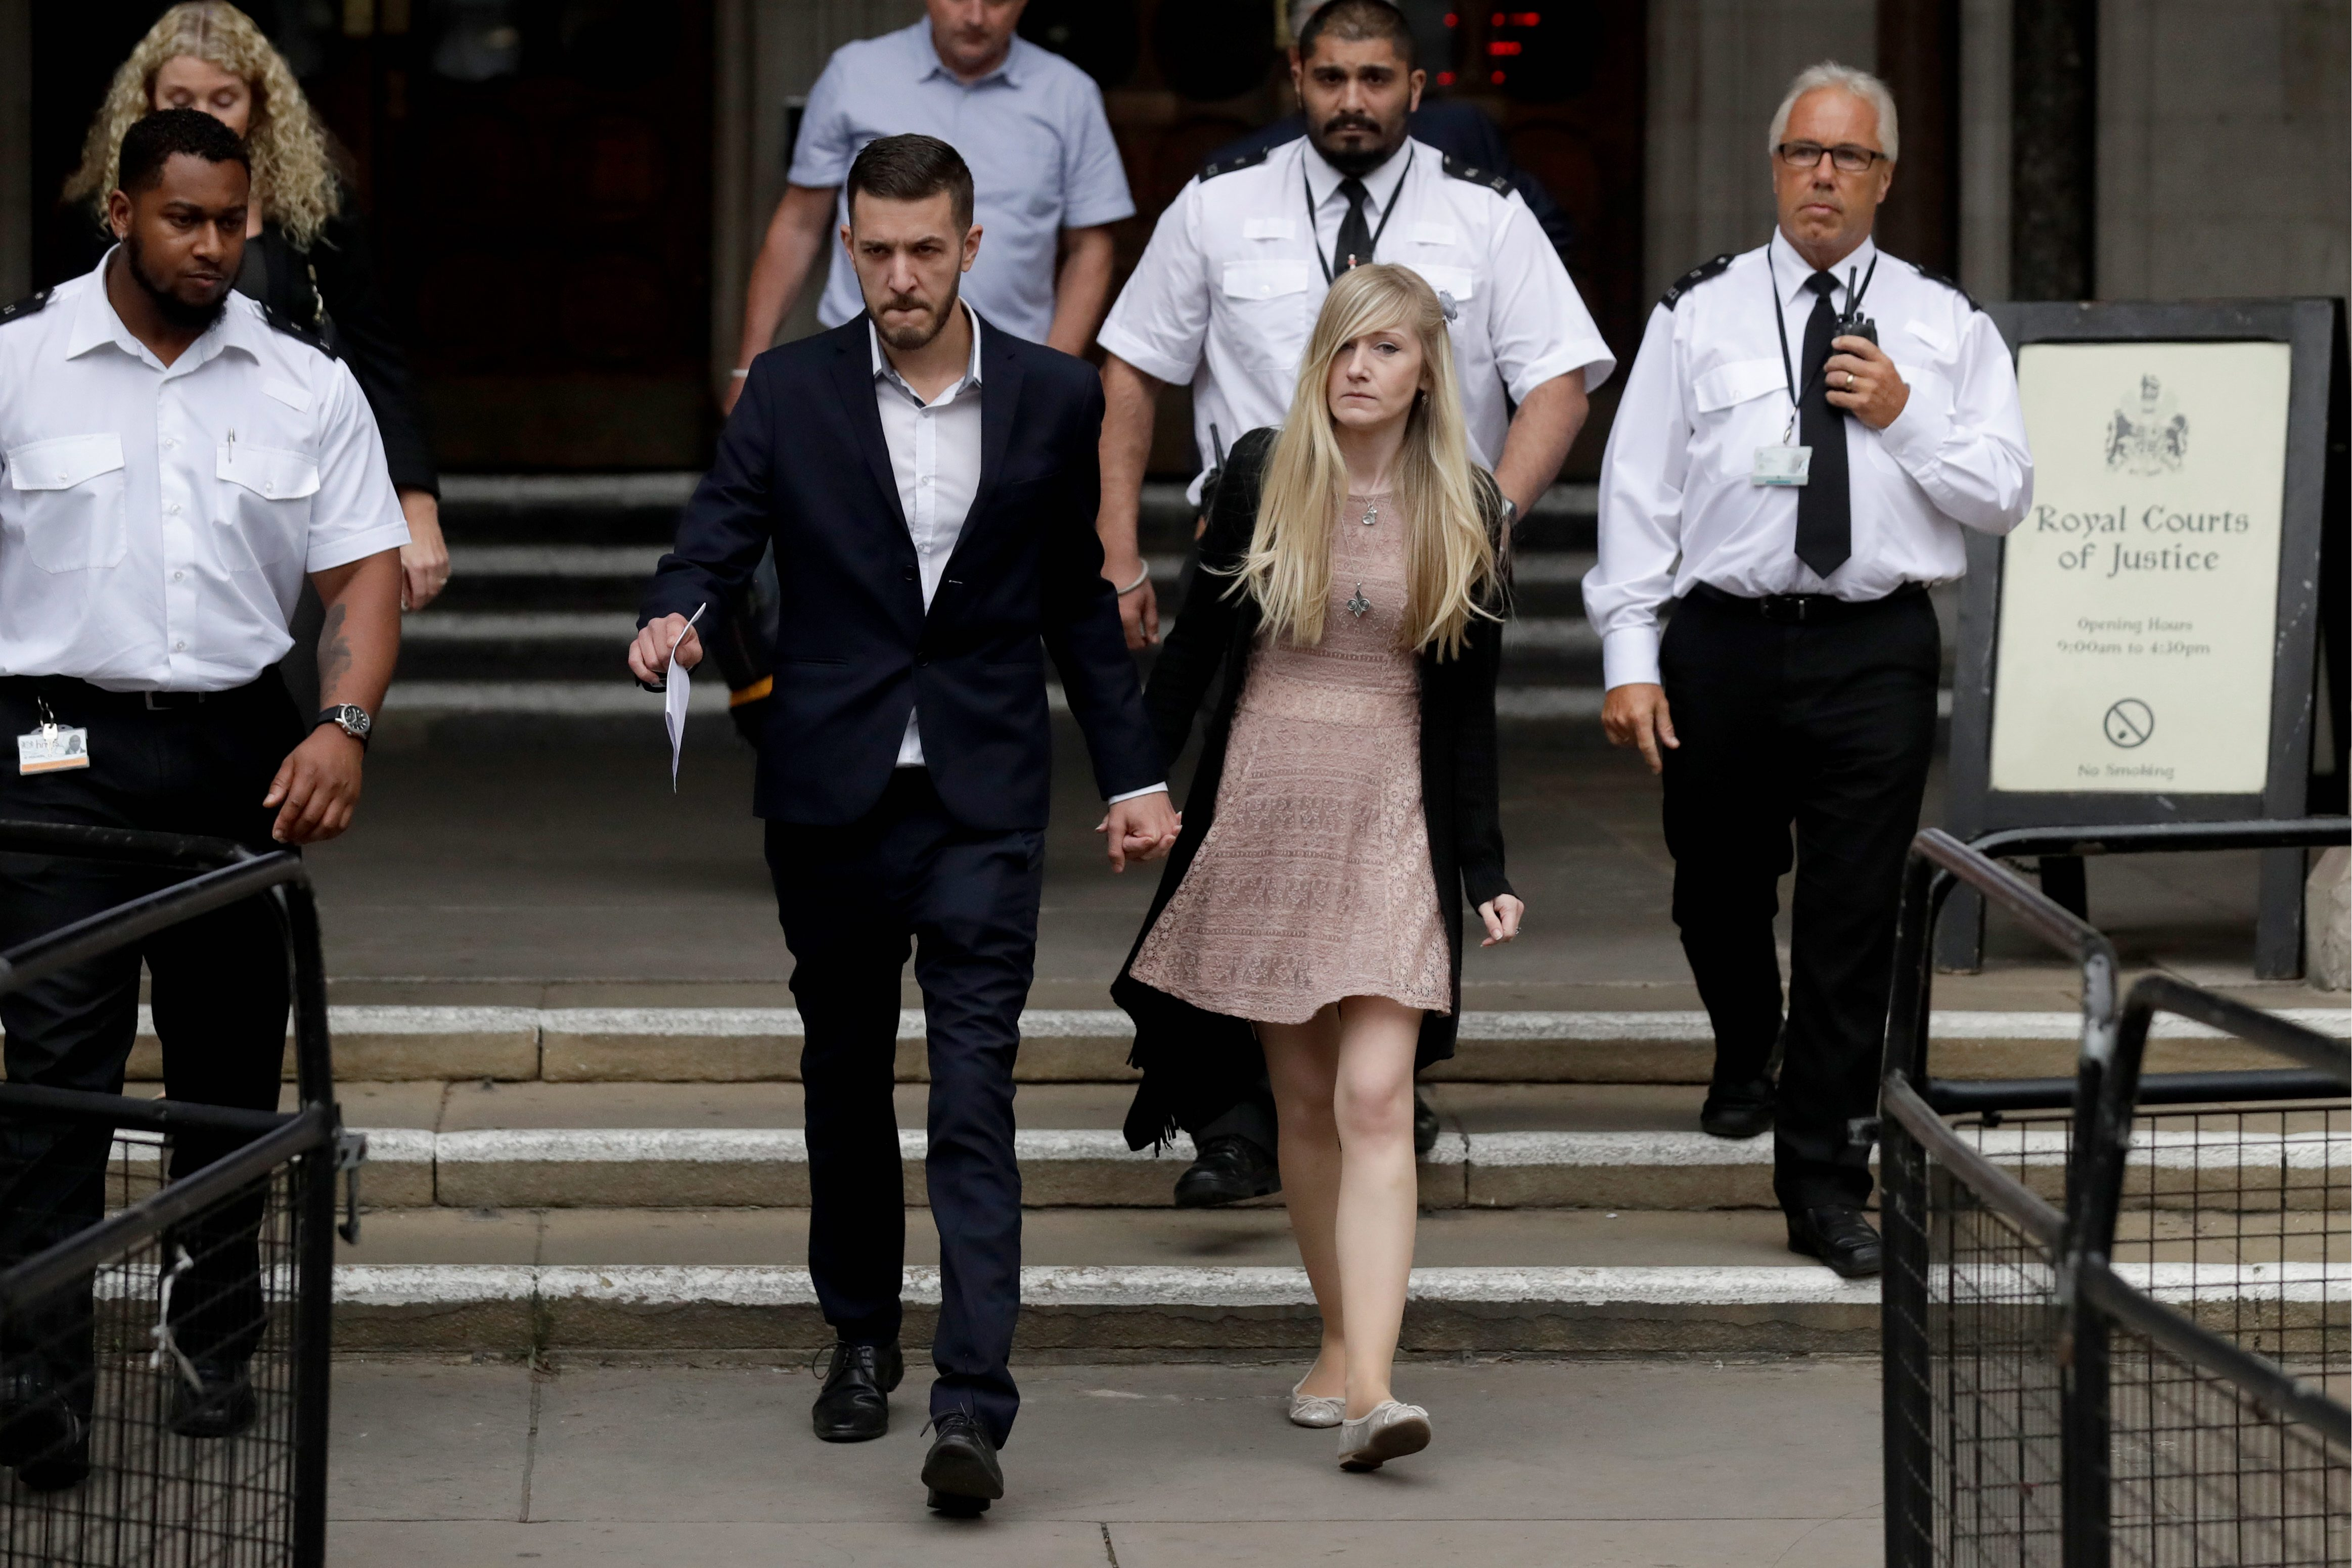 Charlie Gard at mercy of British government, not parents